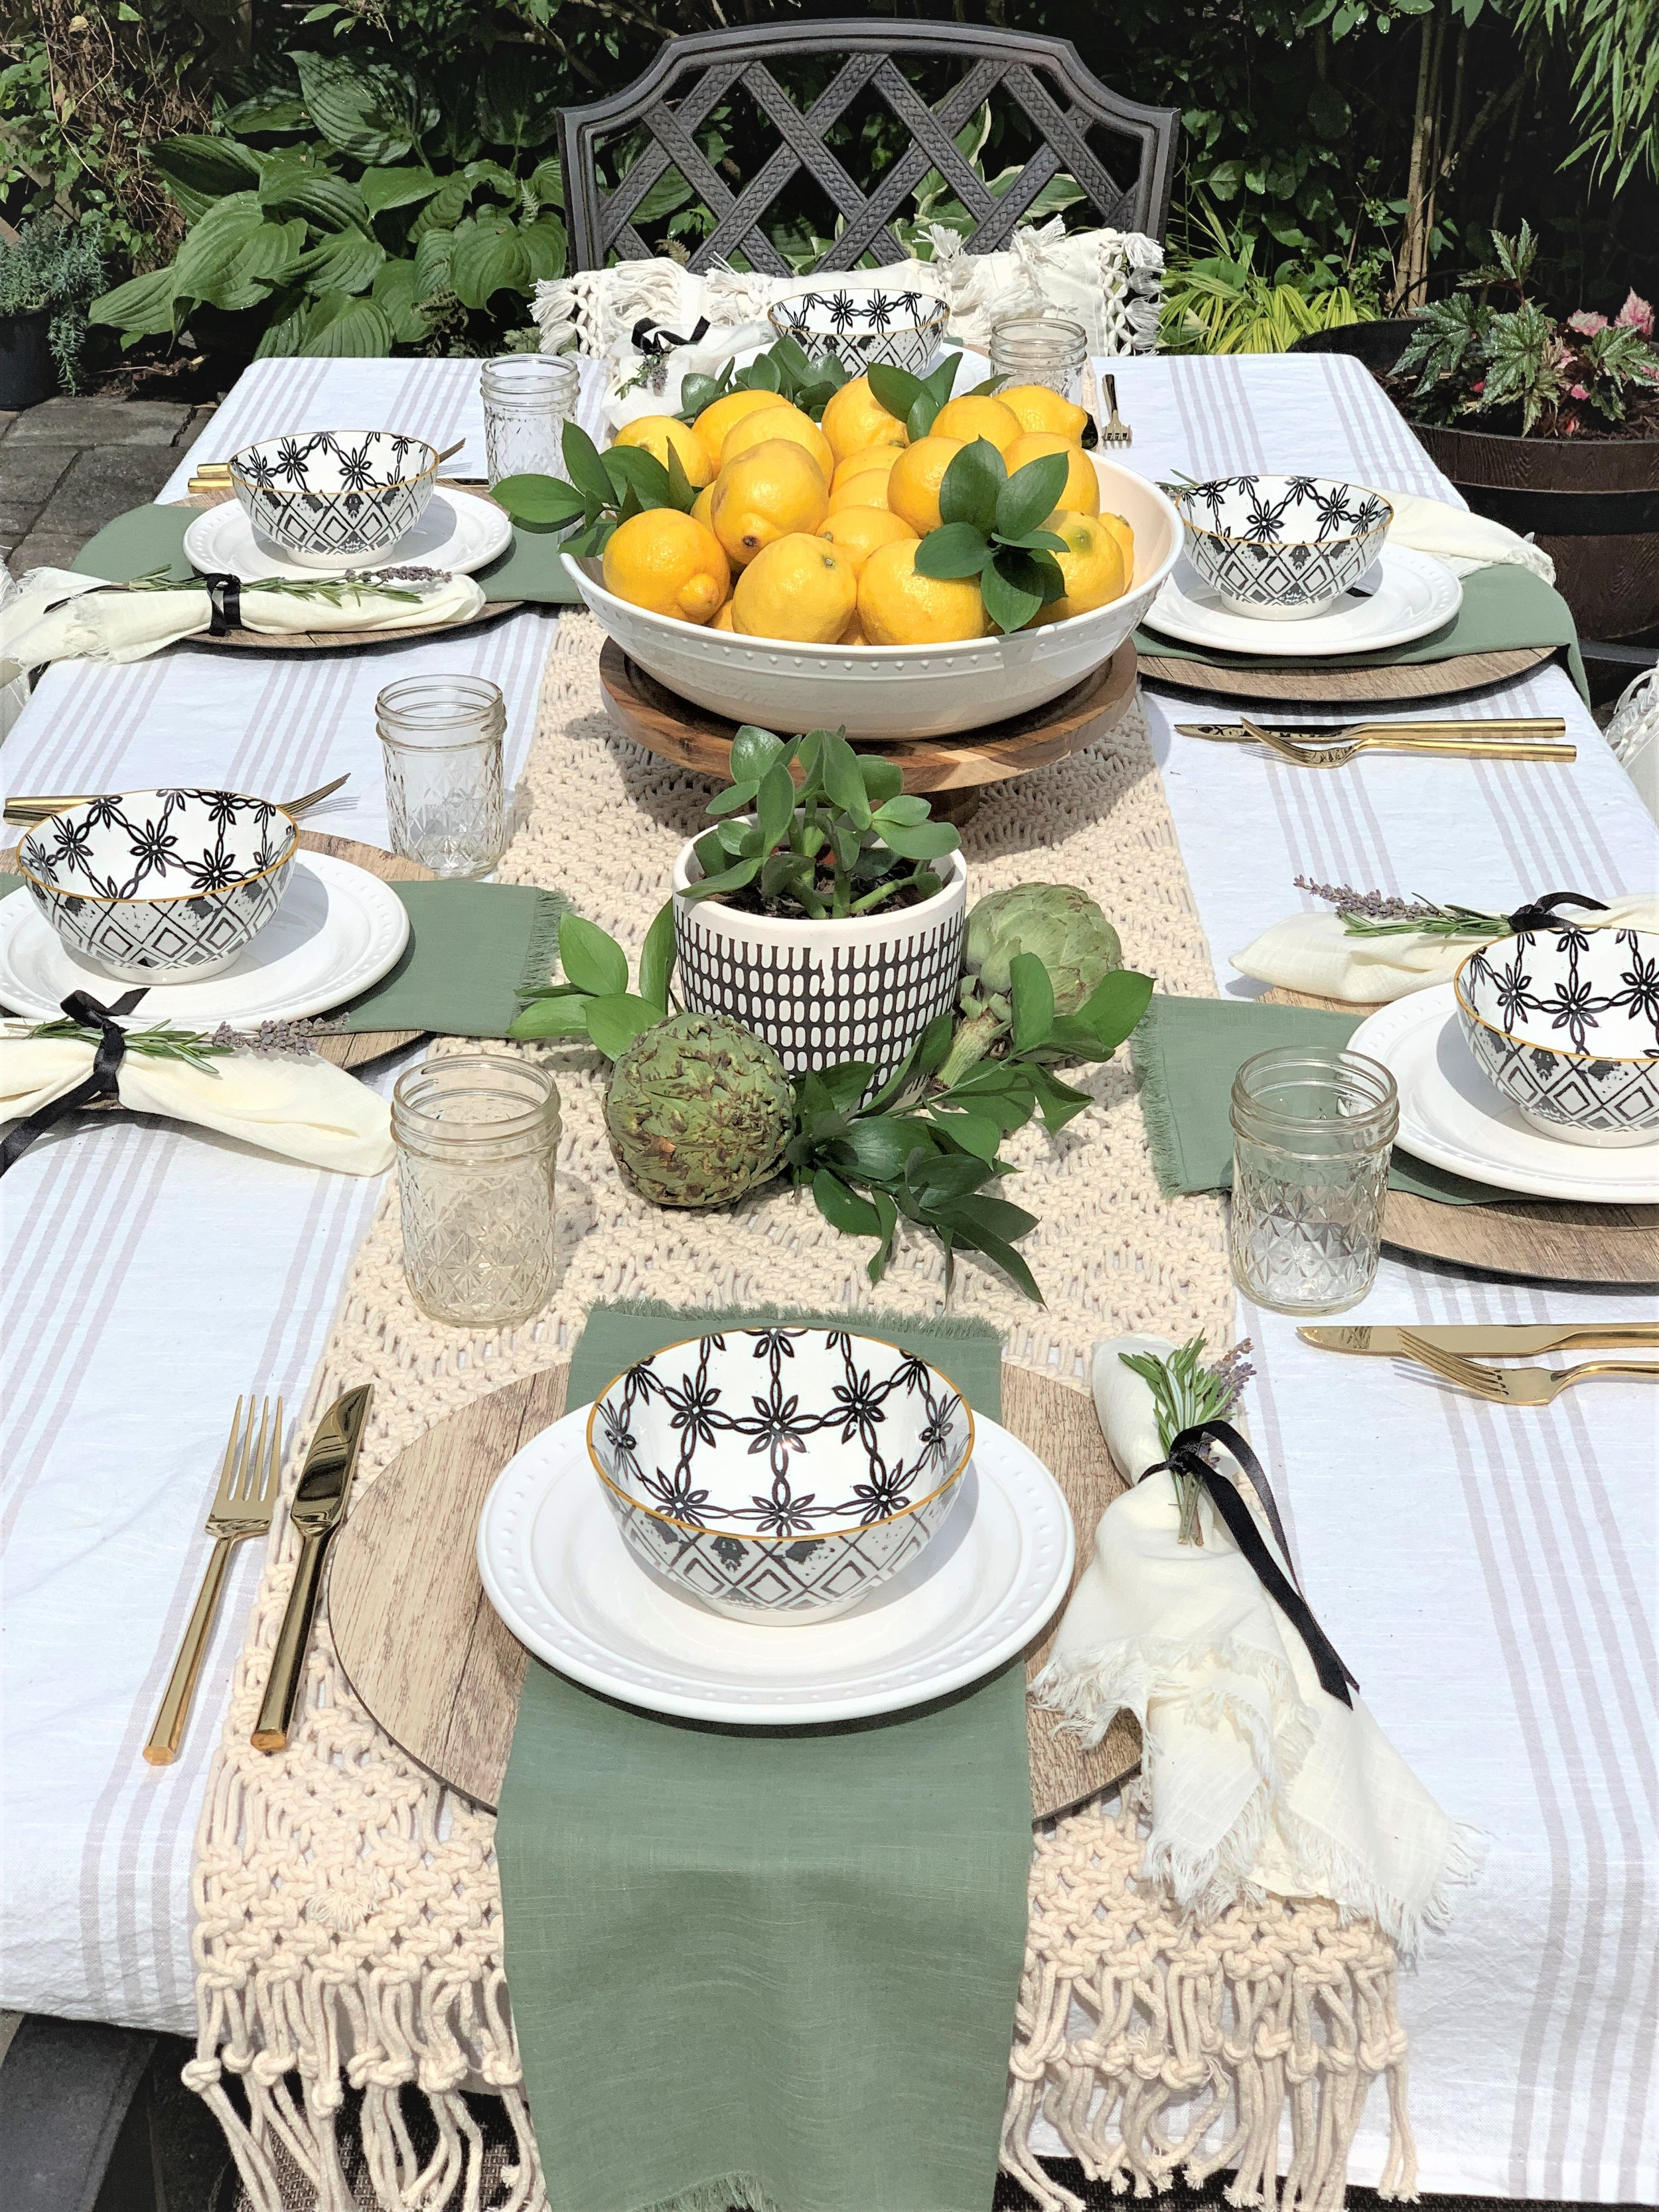 Tablescape by beam&bloom, World Market  White Plates ,  serving bowl ,  cloth napkins  and  macrame table runner . Target  flatware  and  tablecloth .  At Home  chargers and bowls.